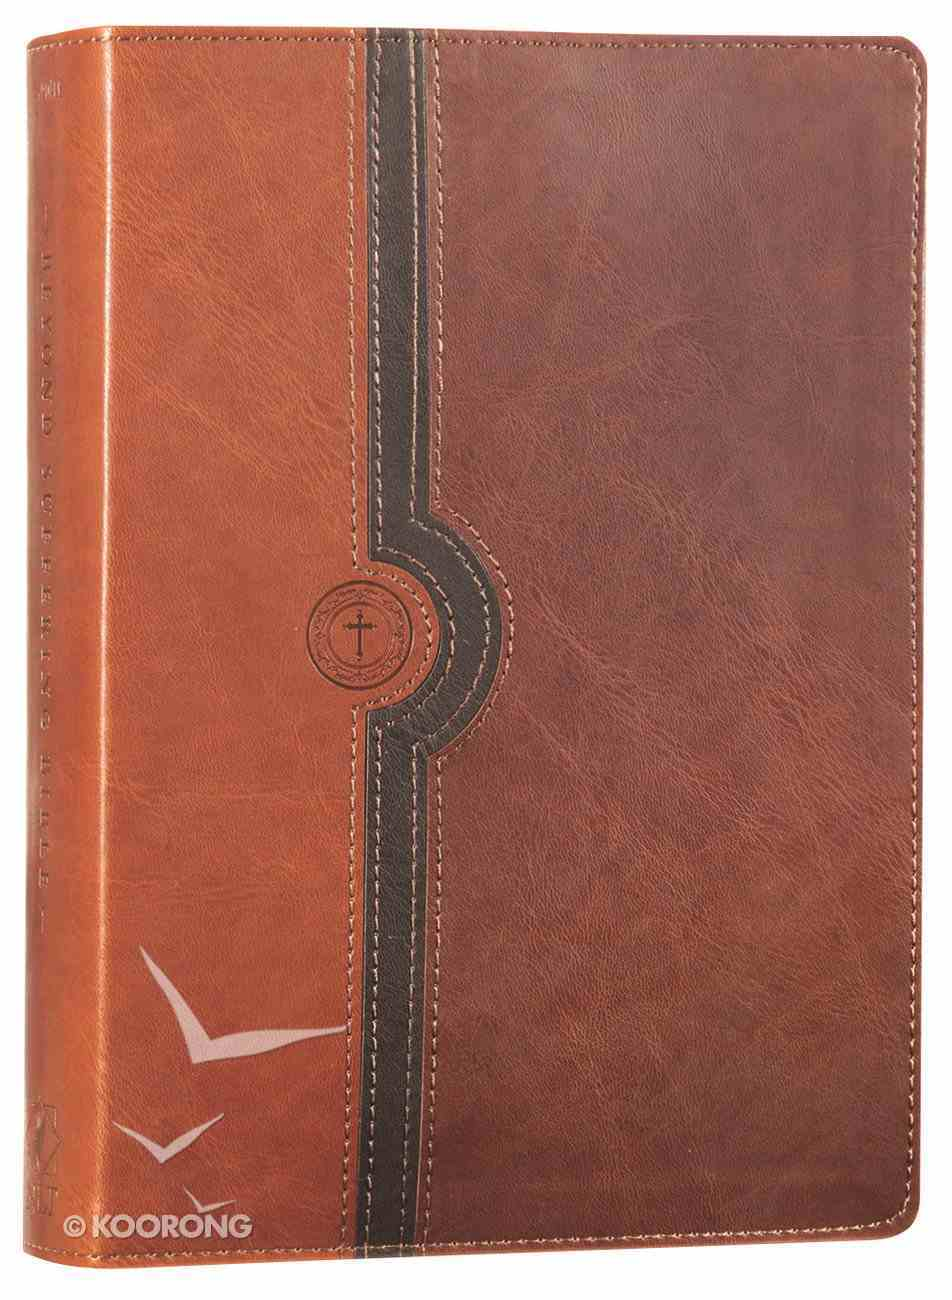 NLT Beyond Suffering Study Bible Brown (Black Letter Edition) Imitation Leather